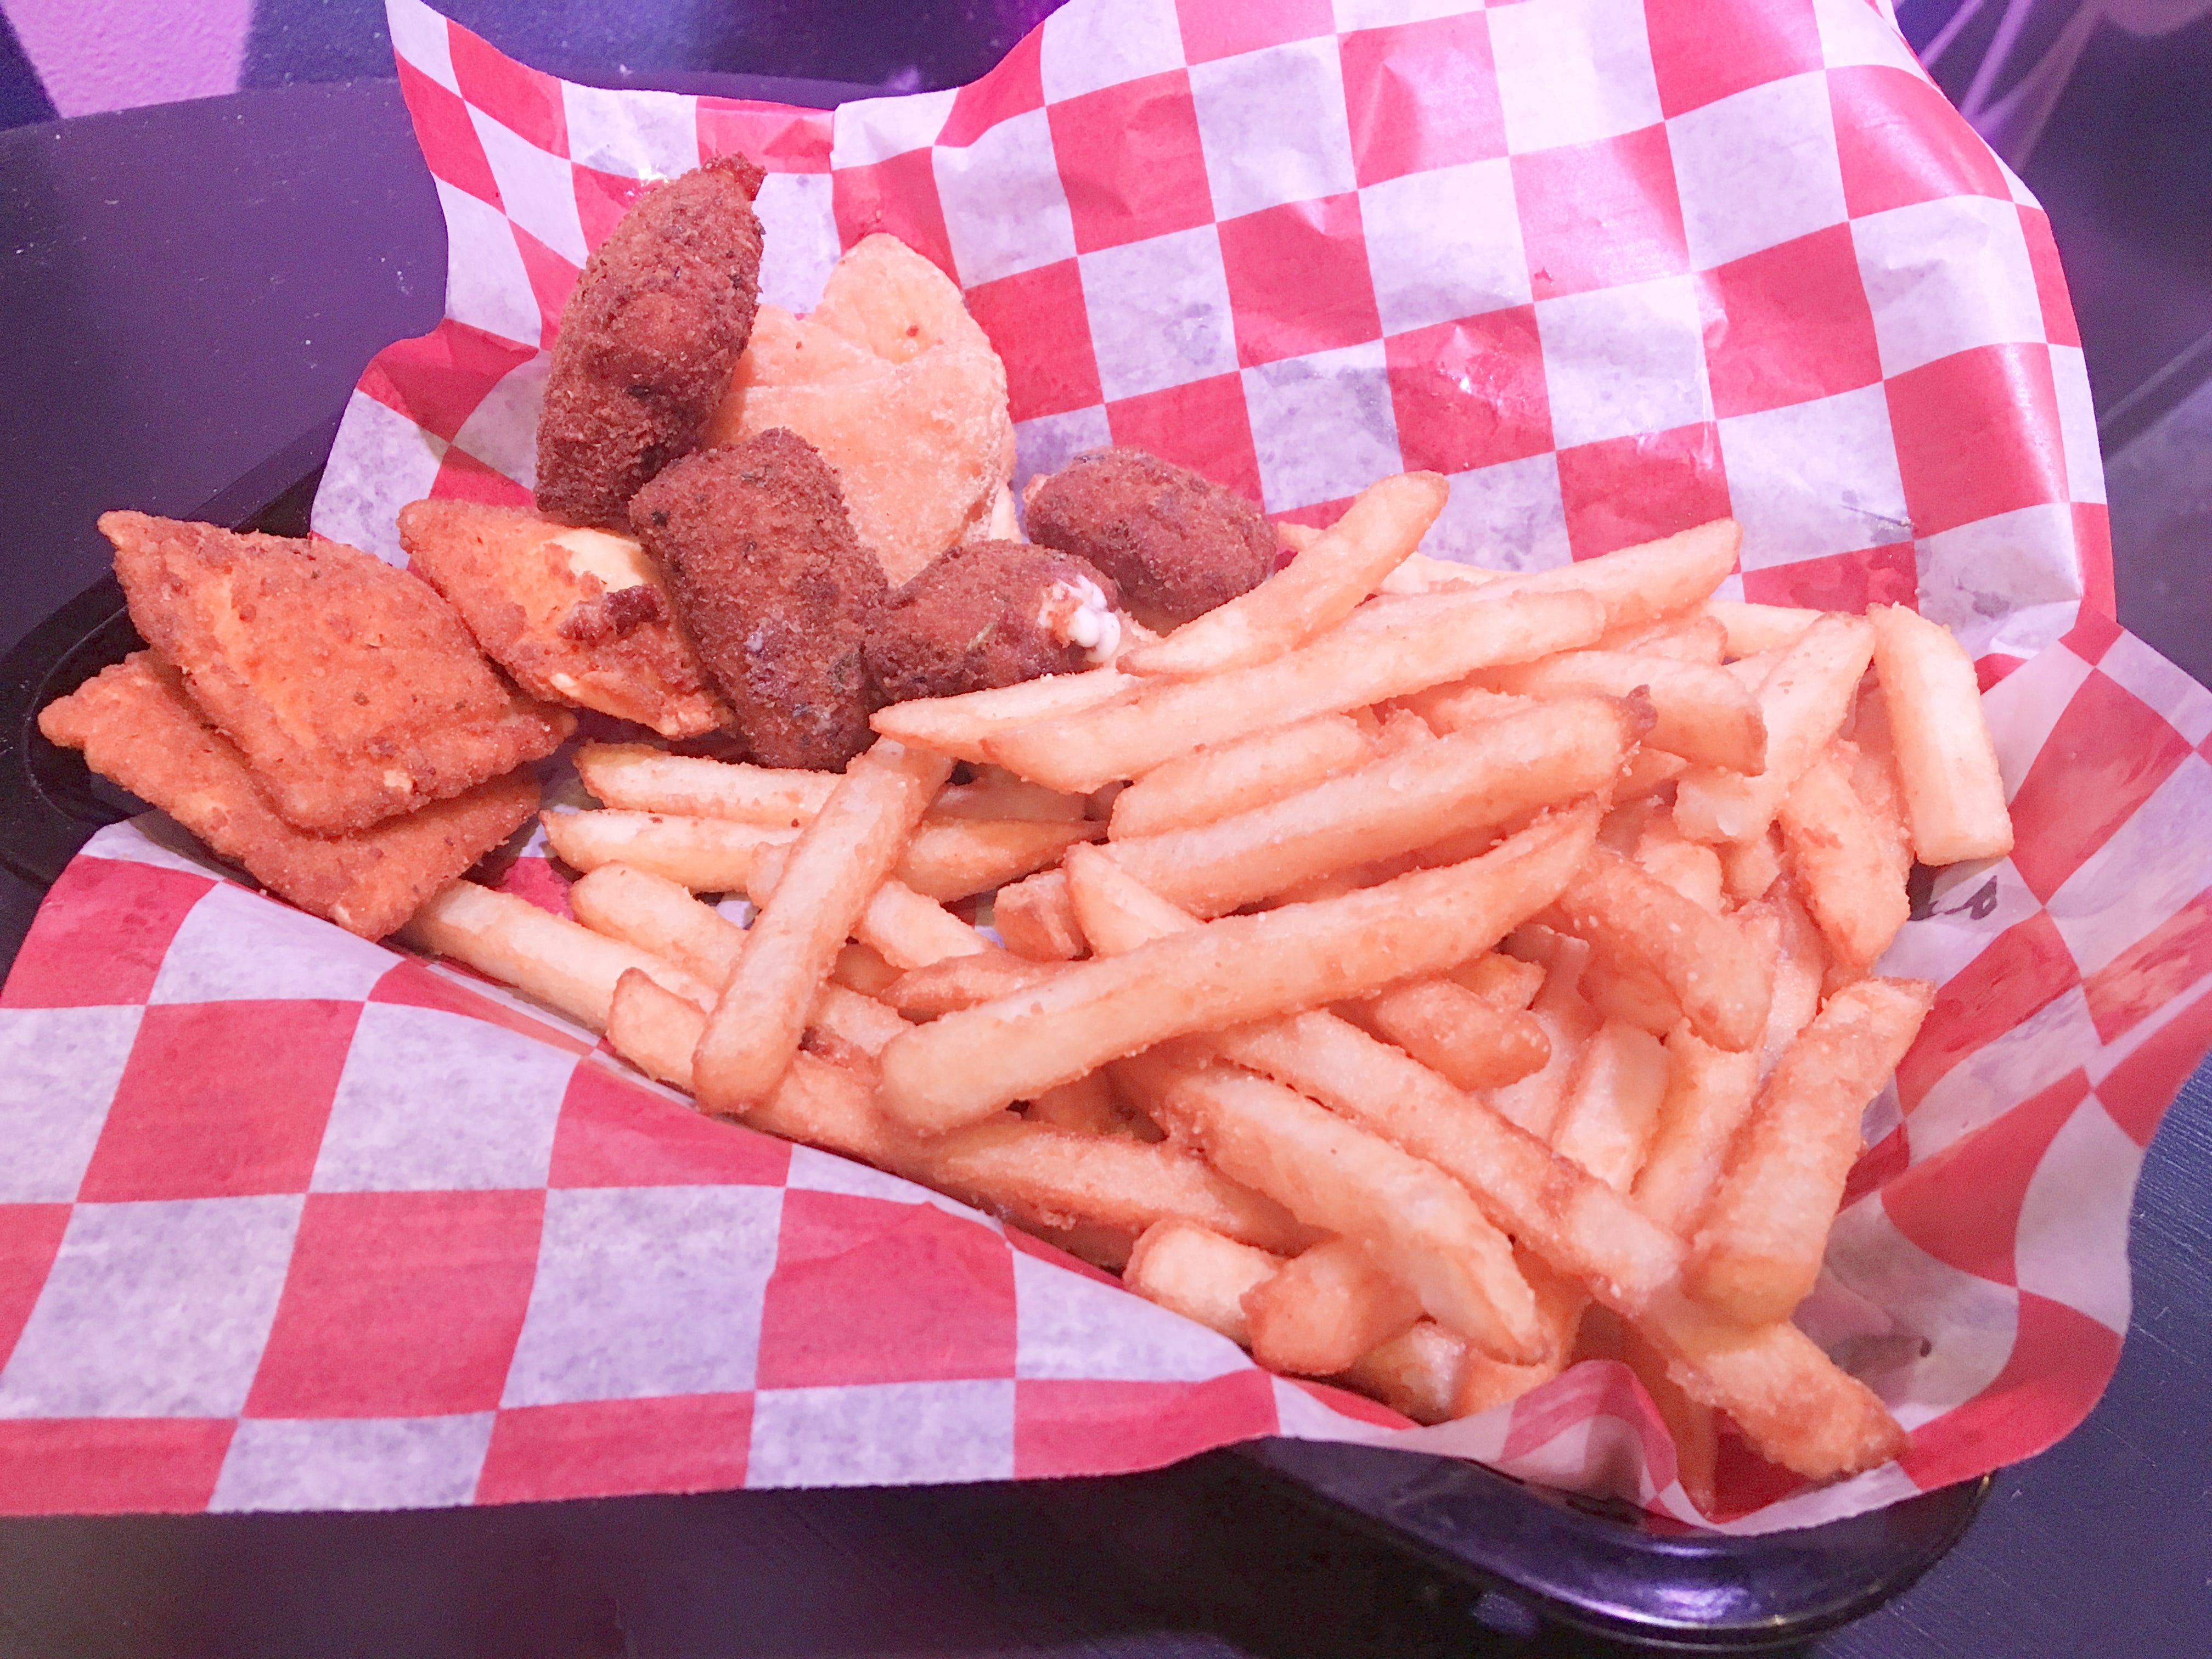 Spinelli's Pizzeria's appetizer features fried ravioli, mac-n-cheese bites, mozzarella bites and fries.